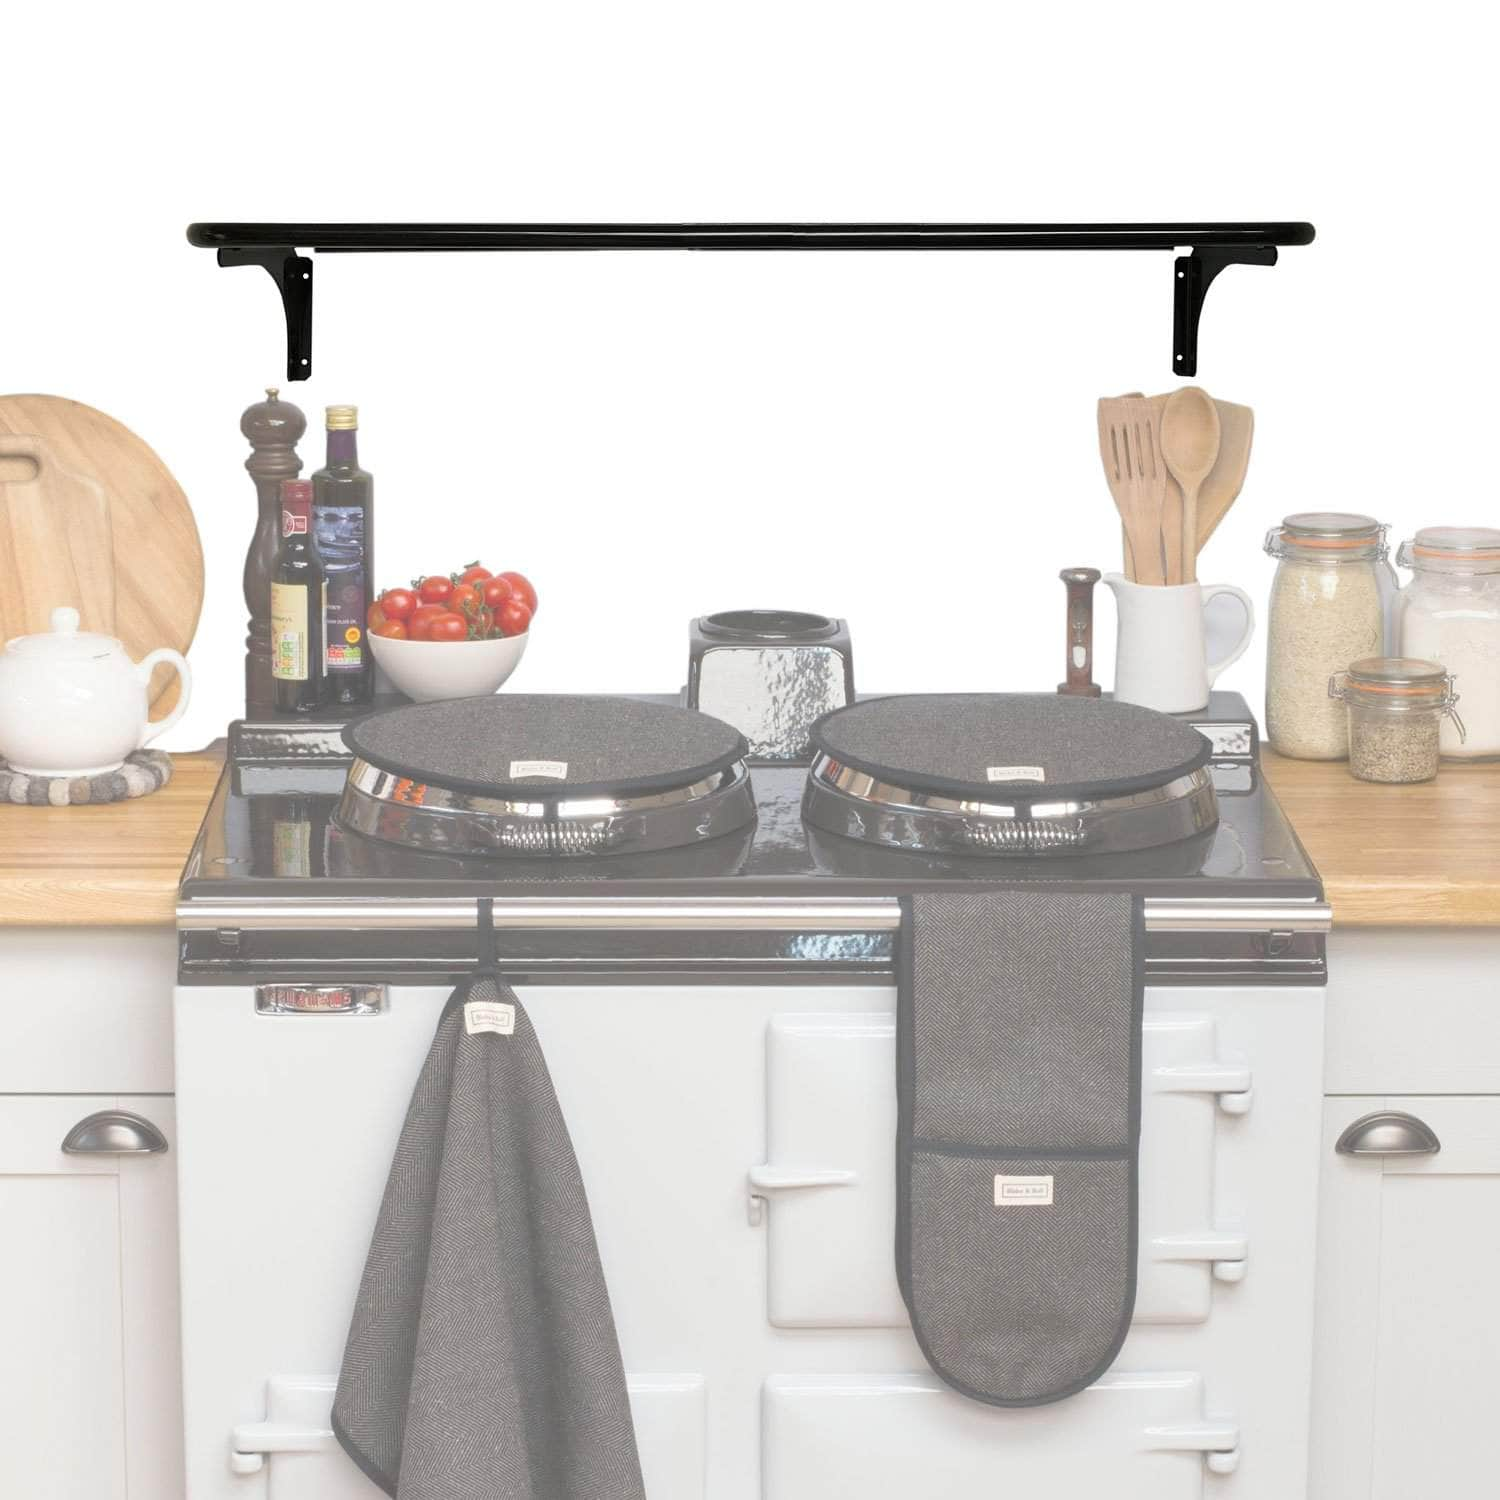 *Not quite perfect* Wall pot rack (no cut out) for use with balance flue Aga range cooker (gloss black) *Not quite perfect* Pot rack for use with Aga range cooker (balanced flue)